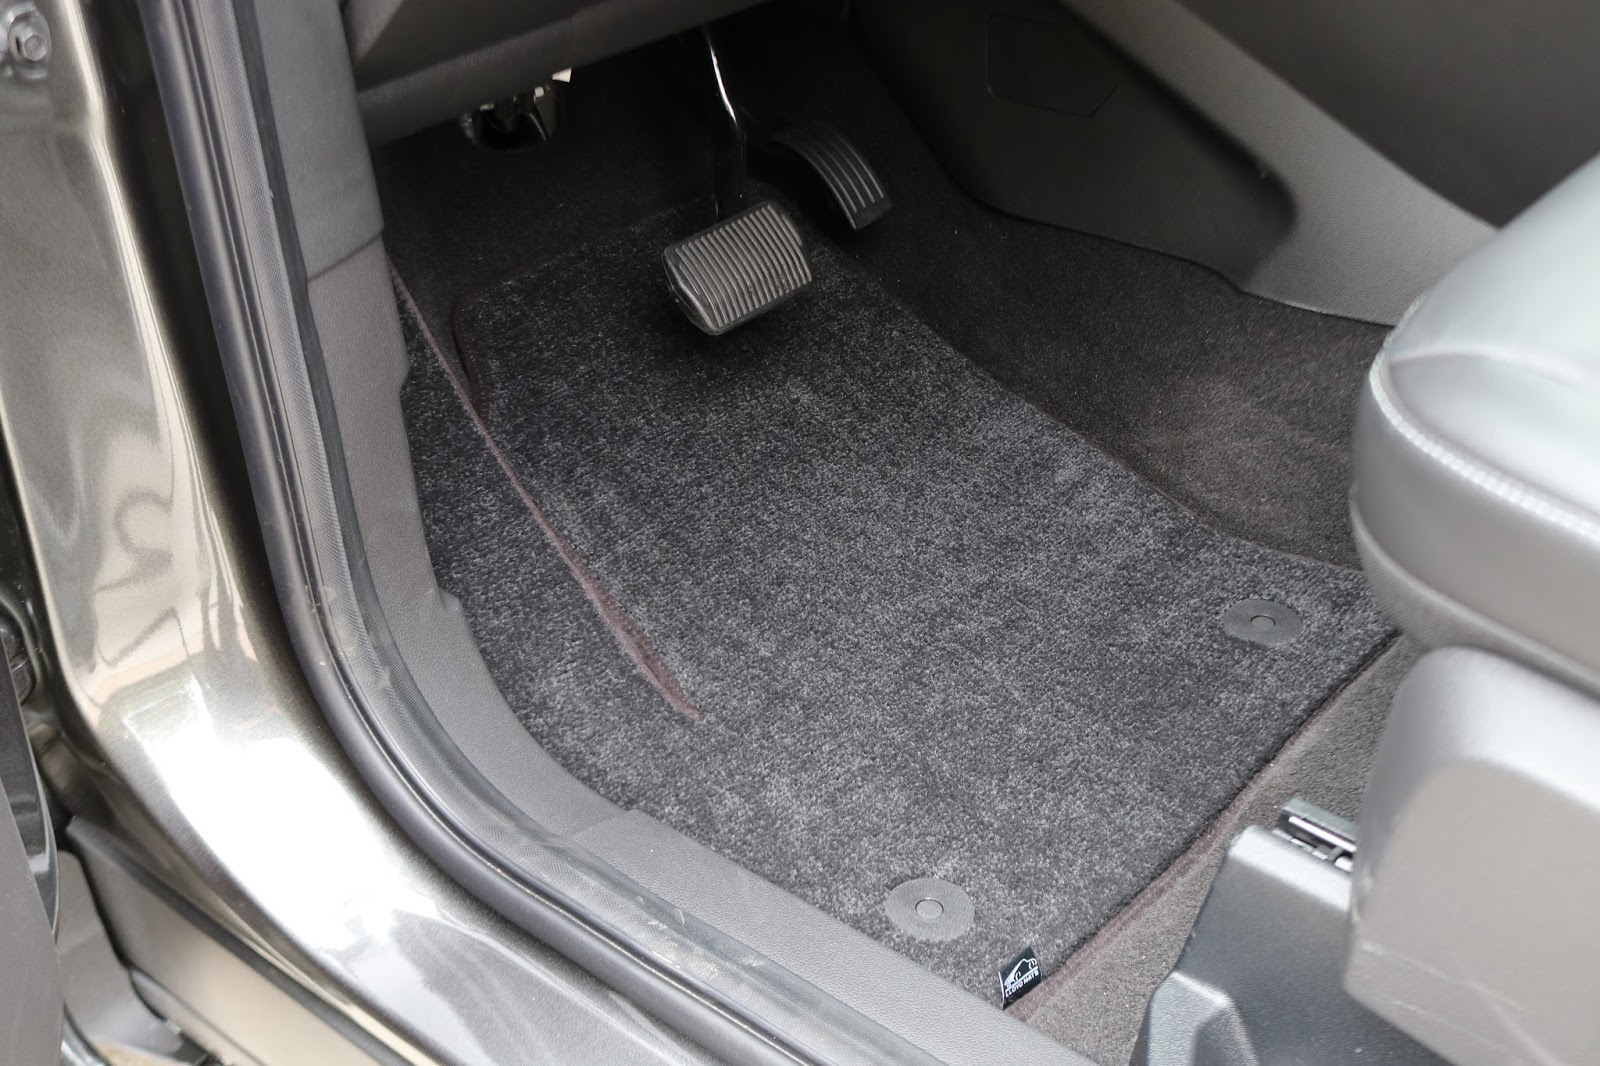 We selected a set of lloyd mat ultimat custom fit carpet floor mats for the 2017 ford escape these plush carpet floor mats are custom fit for the vehicle